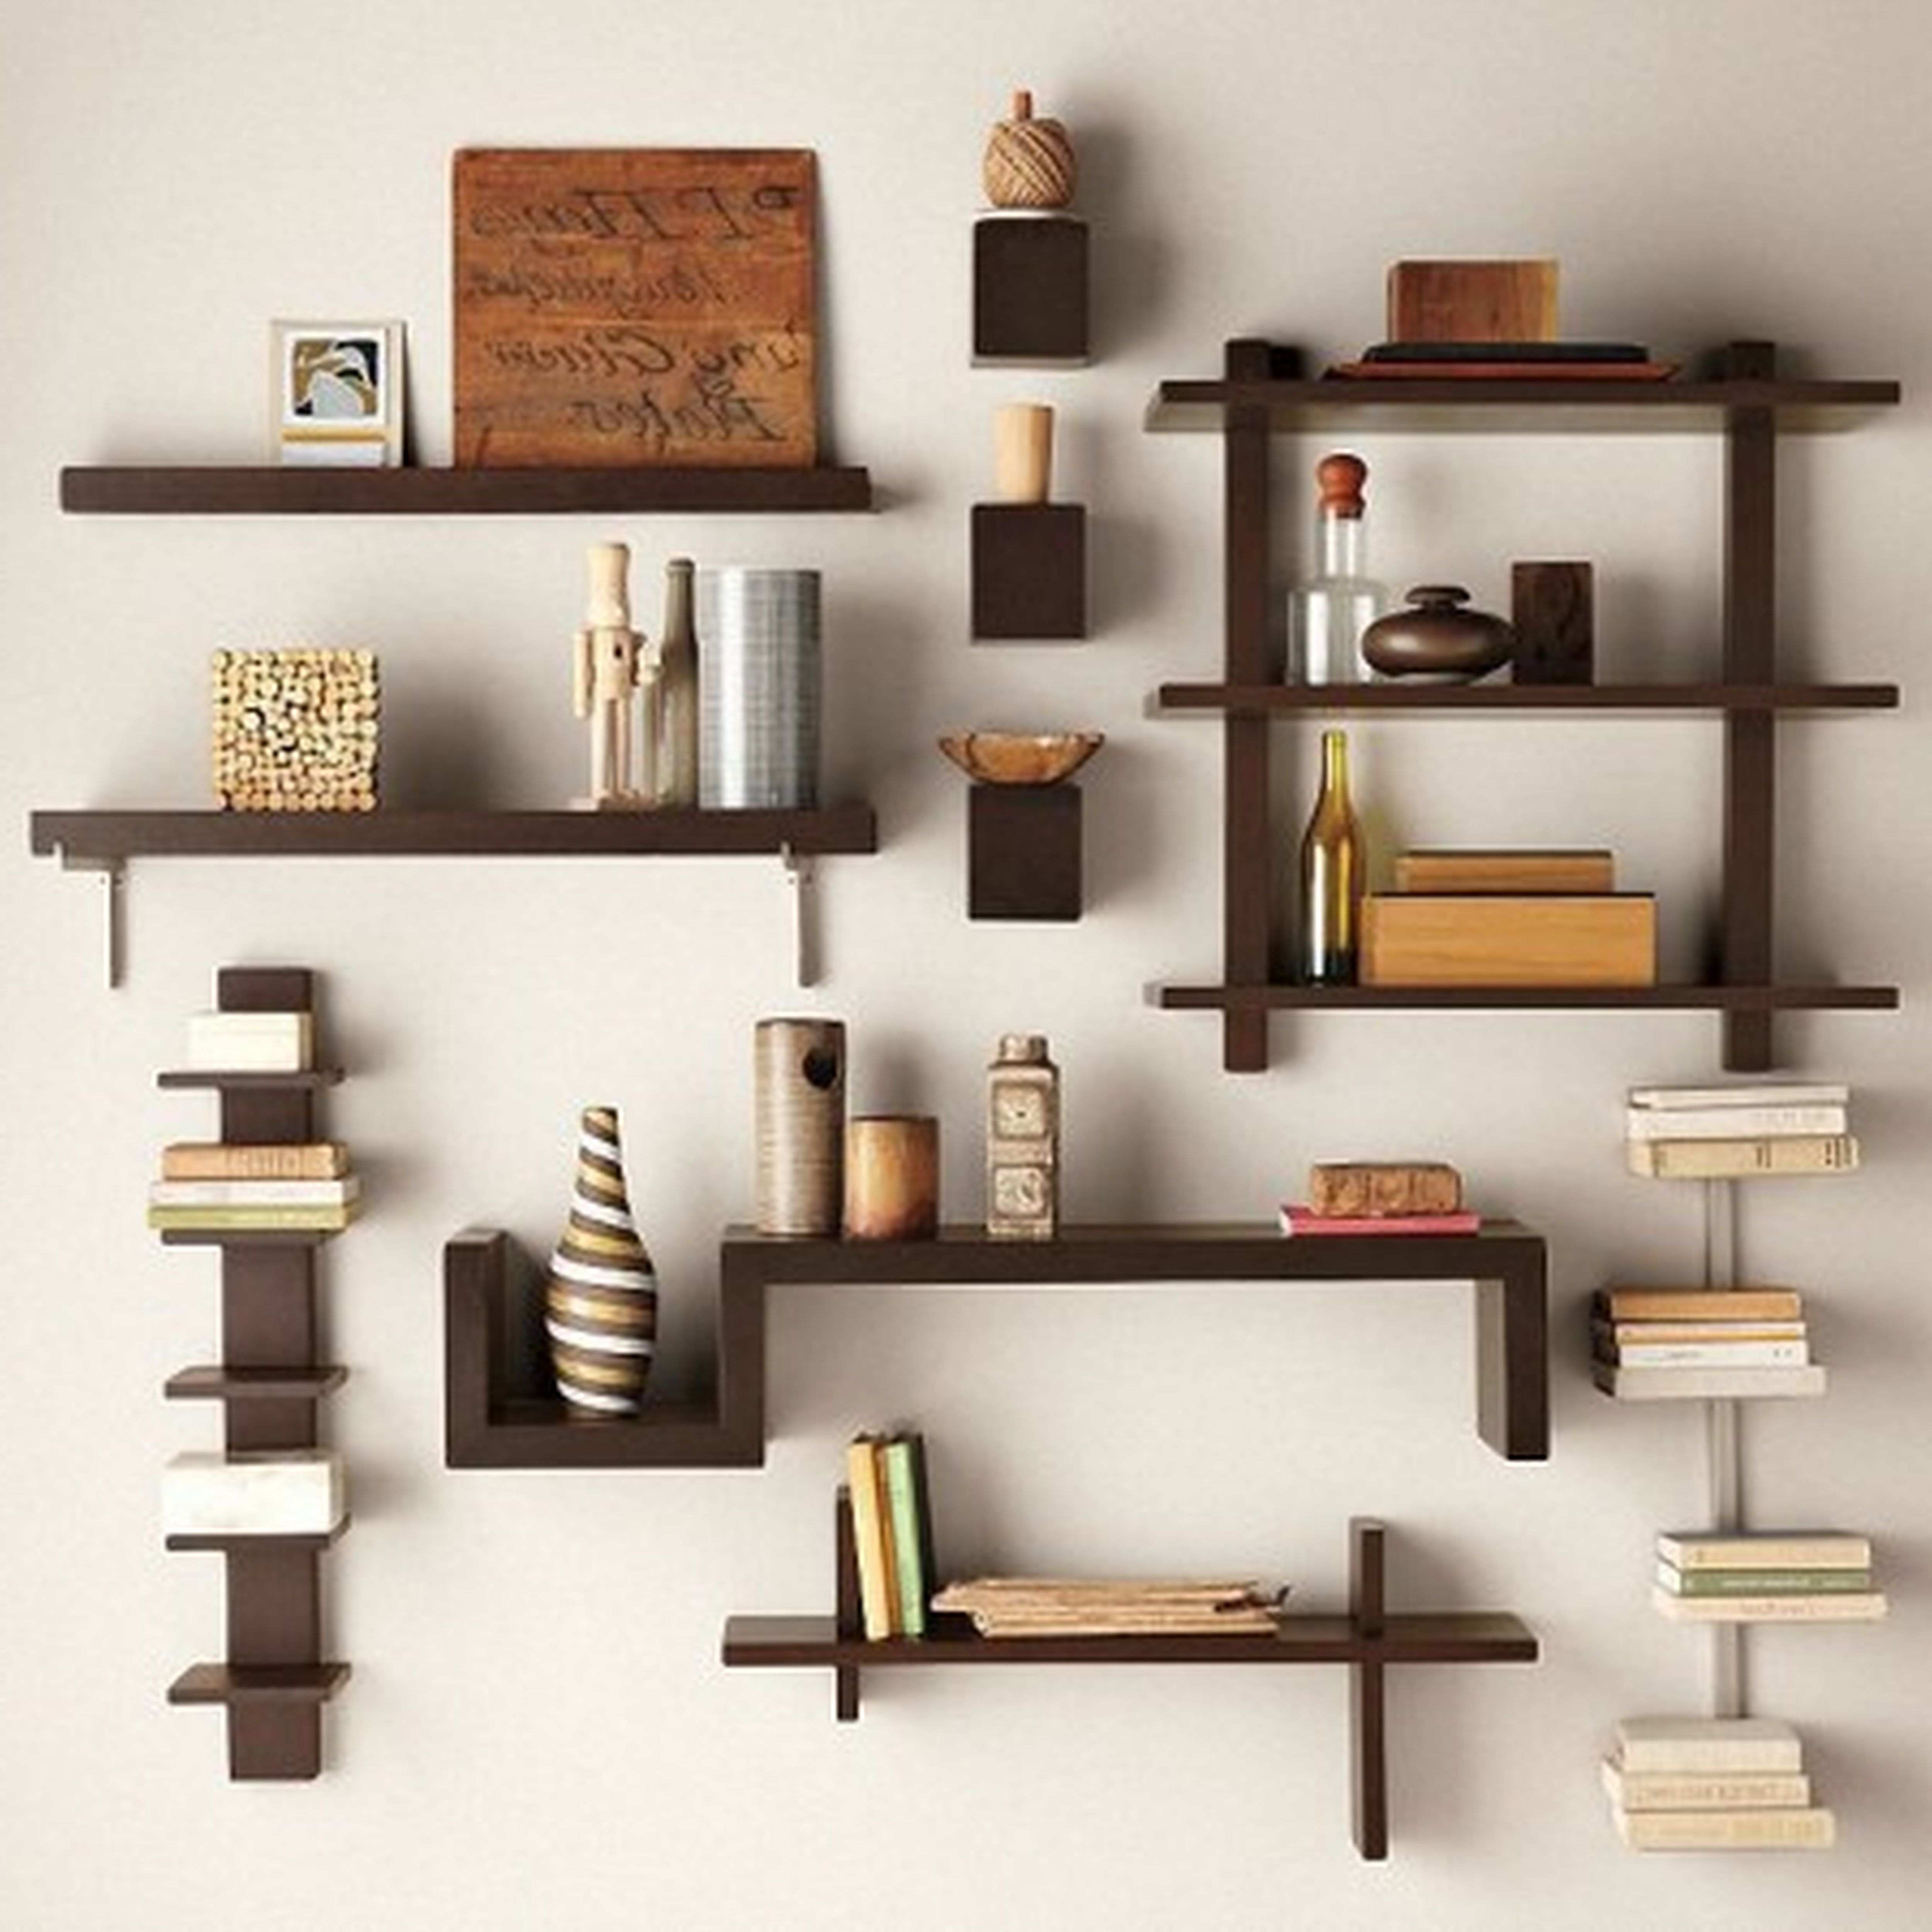 Decorate rooms with decorative shelving unit homesfeed - Bedroom wall shelves decorating ideas ...